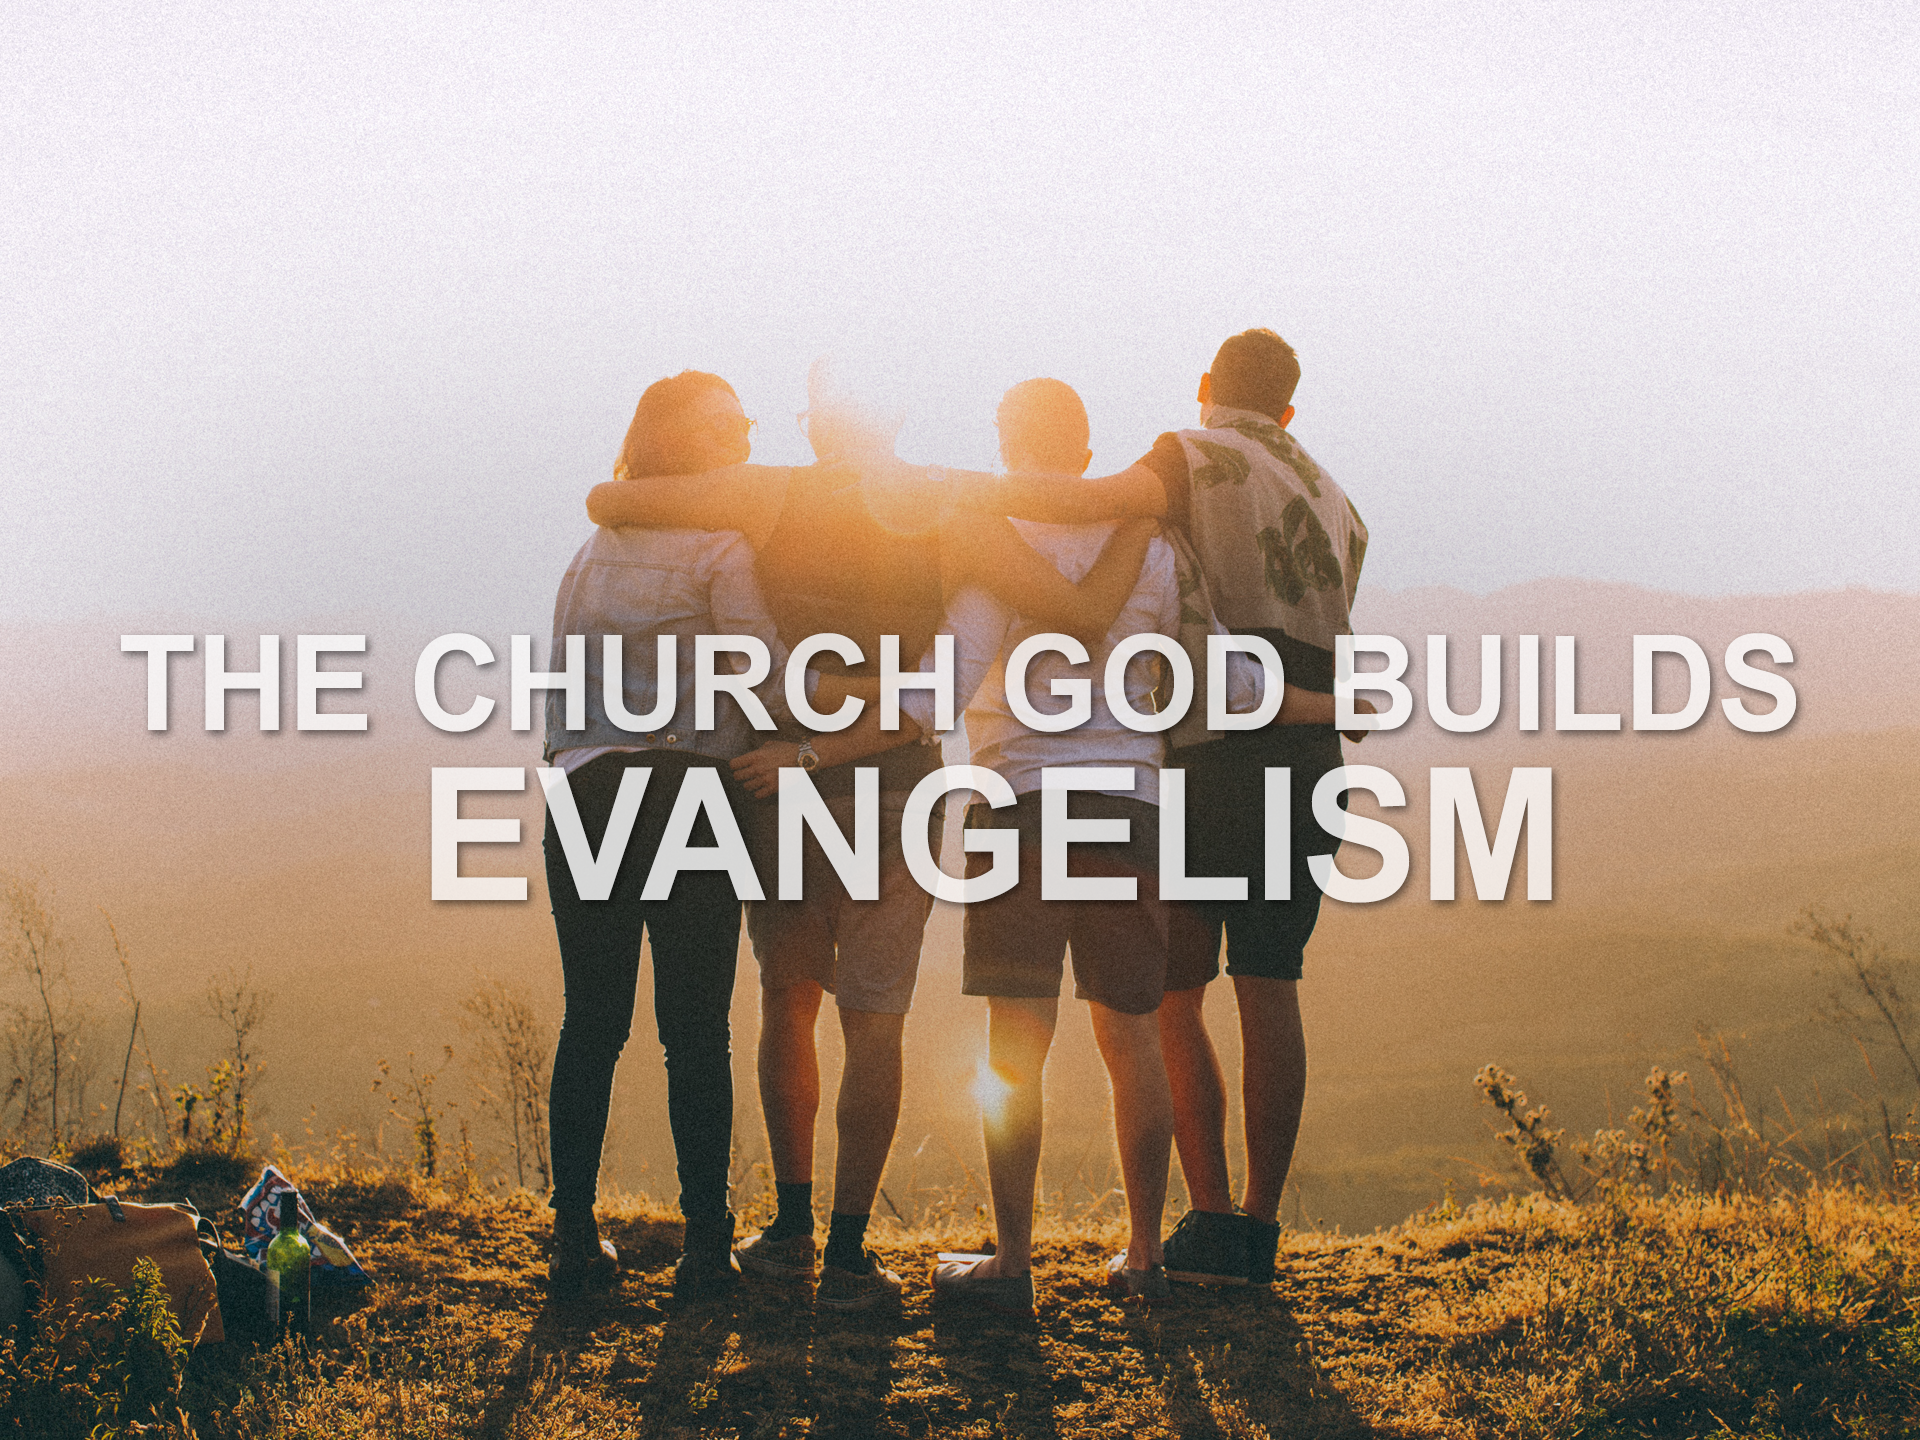 012019 The Church God Builds- Evangelism.png